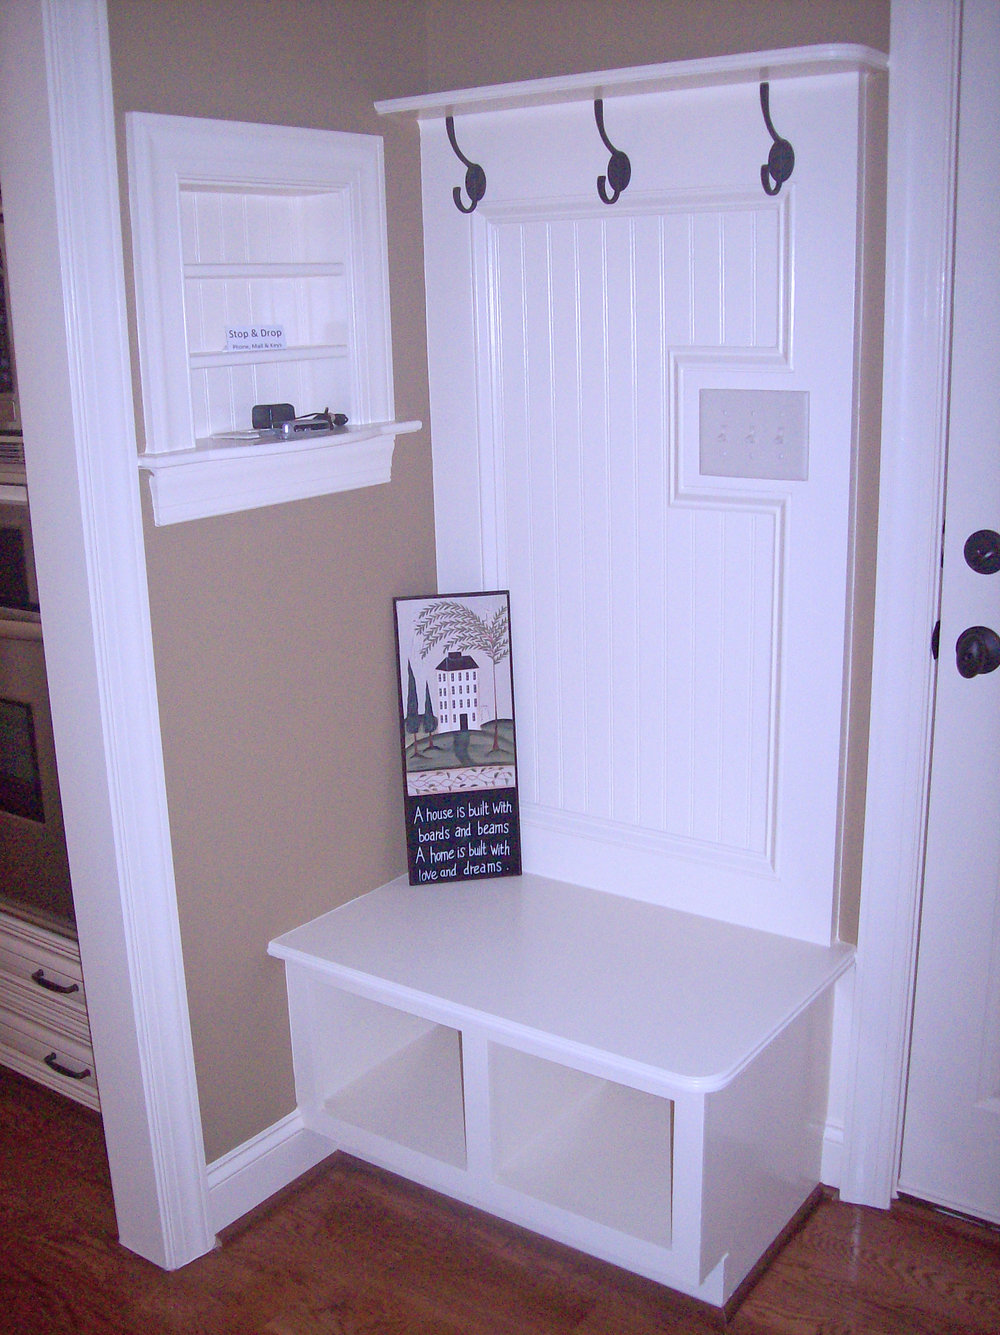 Mudroom - Drop Zone - Charging Station 2.jpg